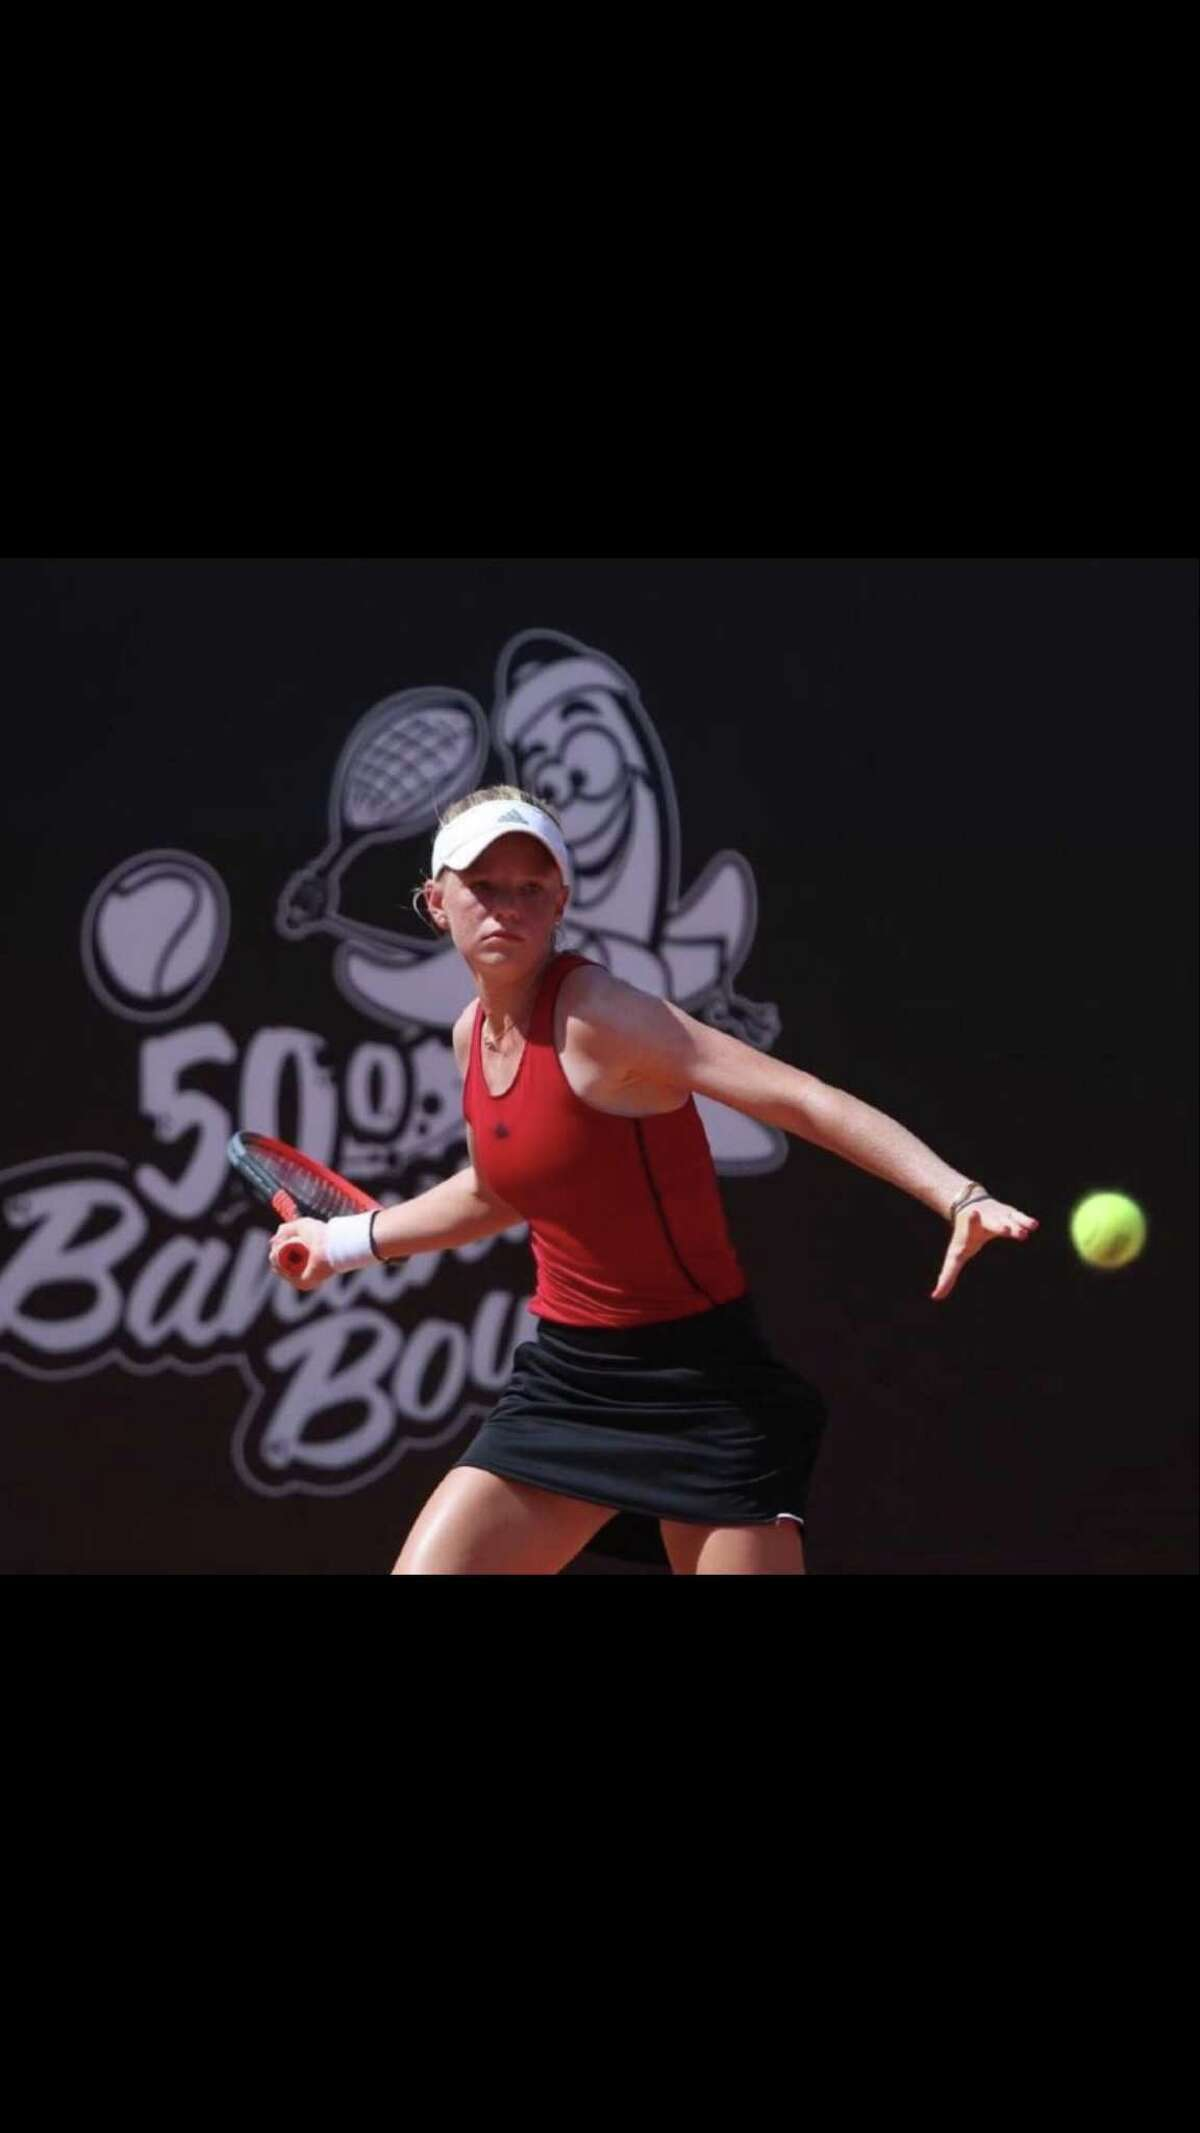 Madison Sieg, a Greenwich resident, has seen her ranking rapidly improve on the ITF Tour, with a number of solid performances at recent tournaments.